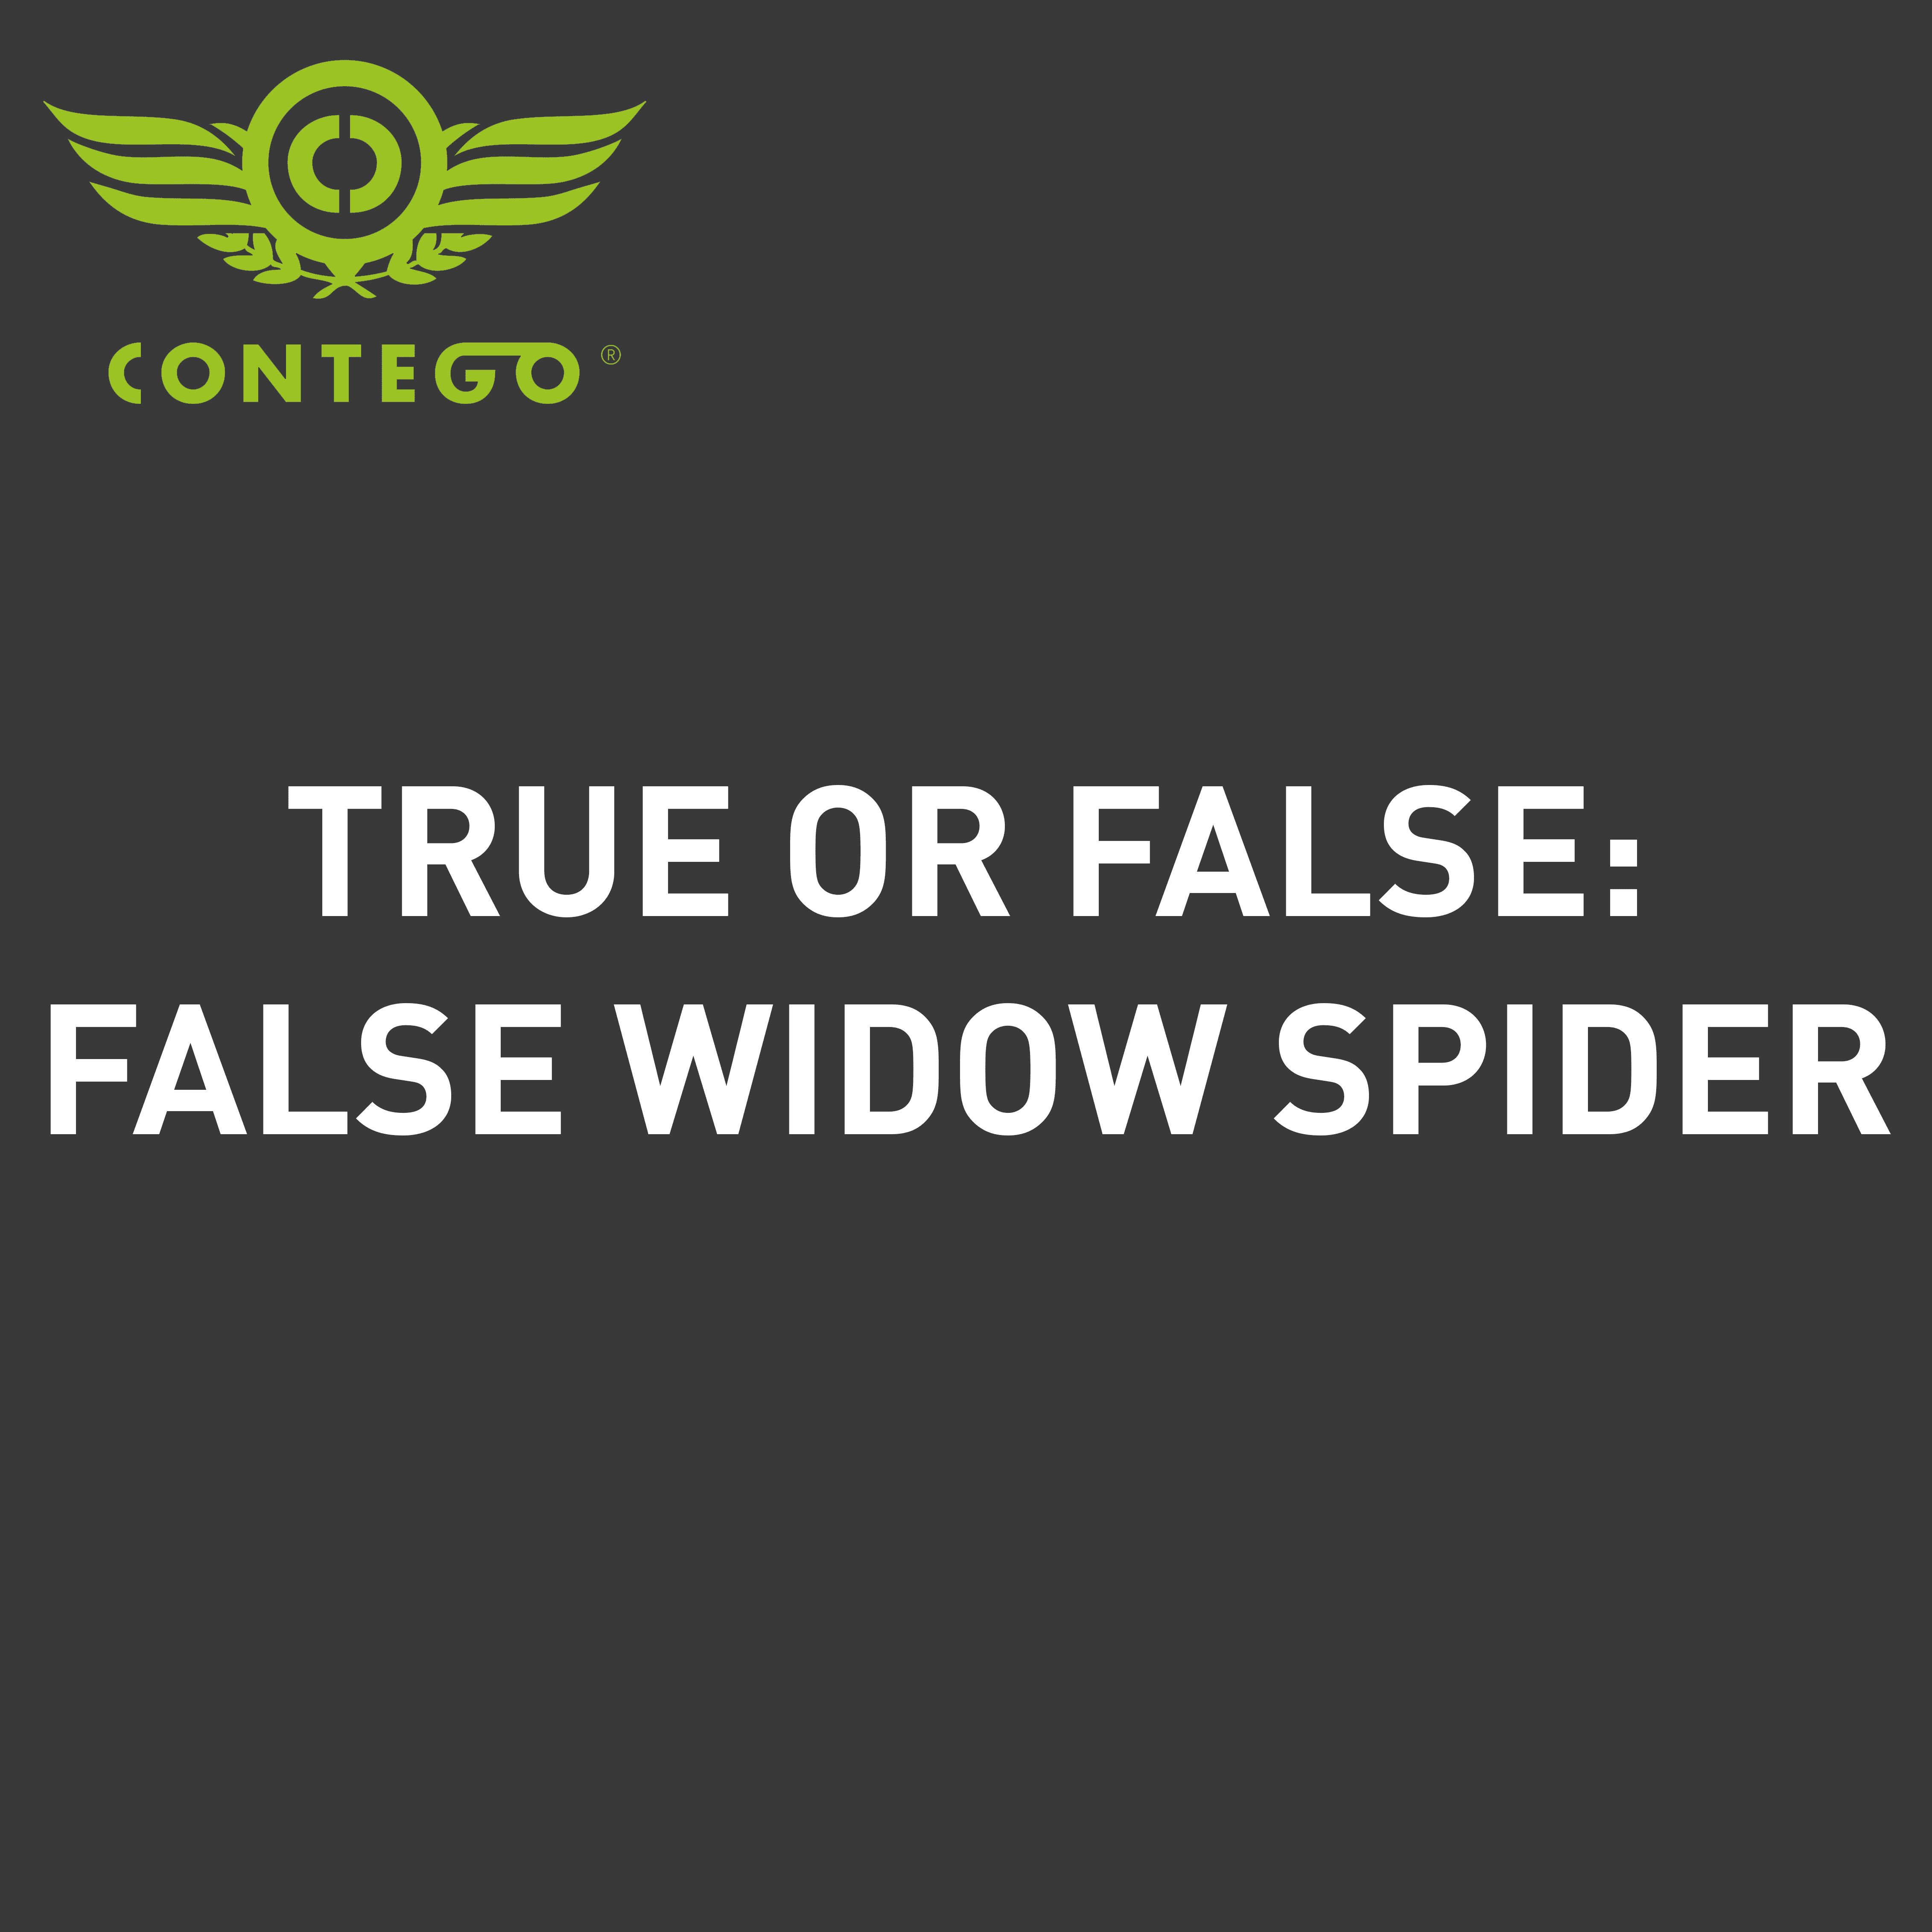 TRUE OR FALSE WIDOWN SPIDER